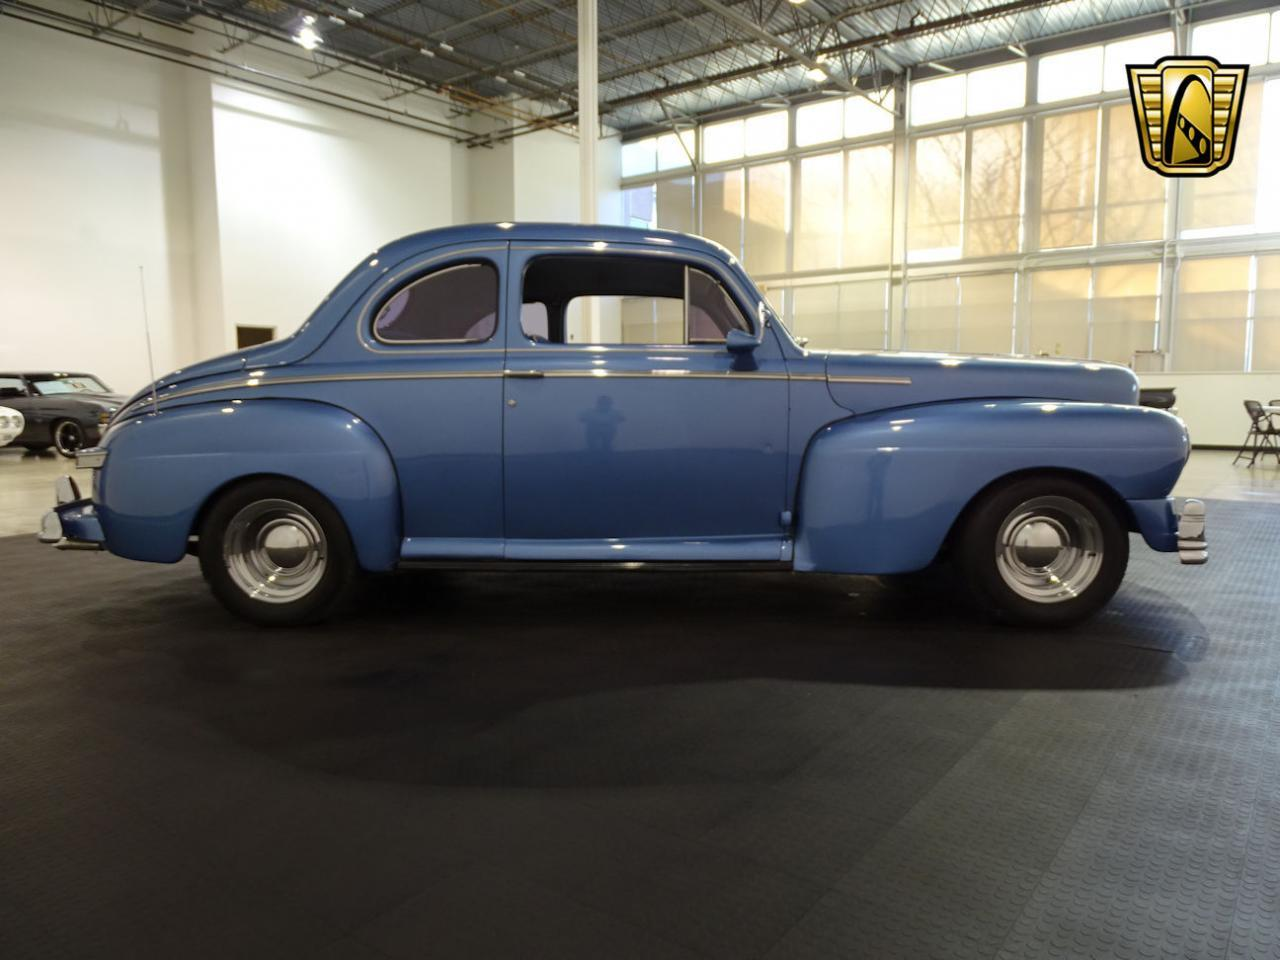 Large Picture of '47 Mercury Coupe located in Indianapolis Indiana - $19,995.00 Offered by Gateway Classic Cars - Indianapolis - MFNJ